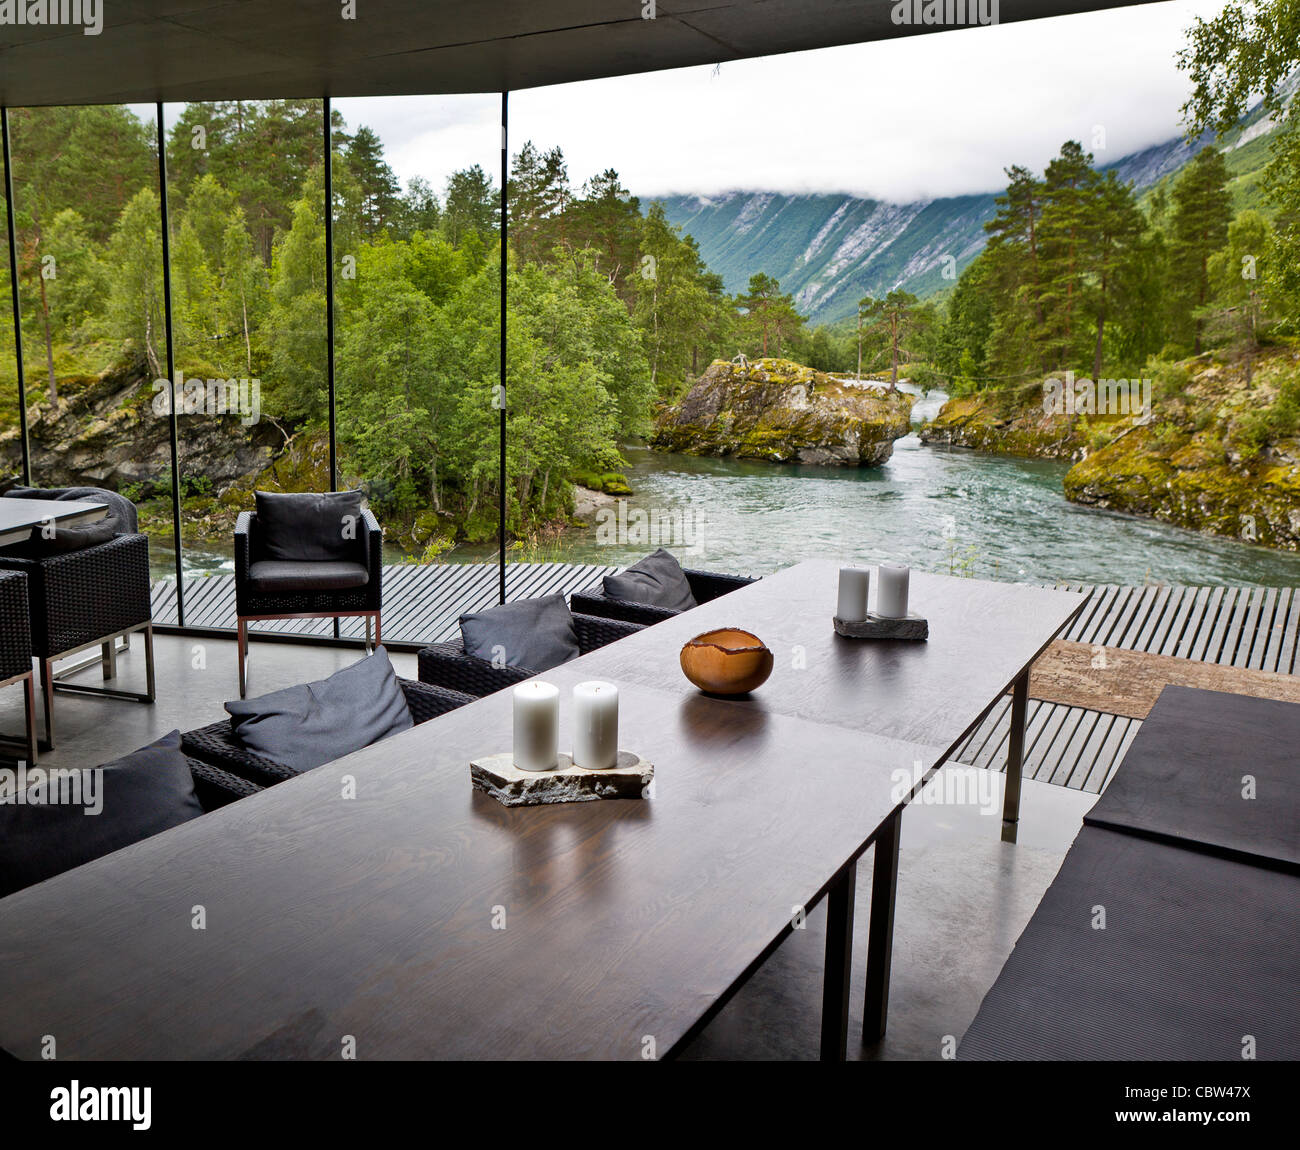 juvet landscape hotel valldal norway stock photo royalty free image 41734110 alamy. Black Bedroom Furniture Sets. Home Design Ideas